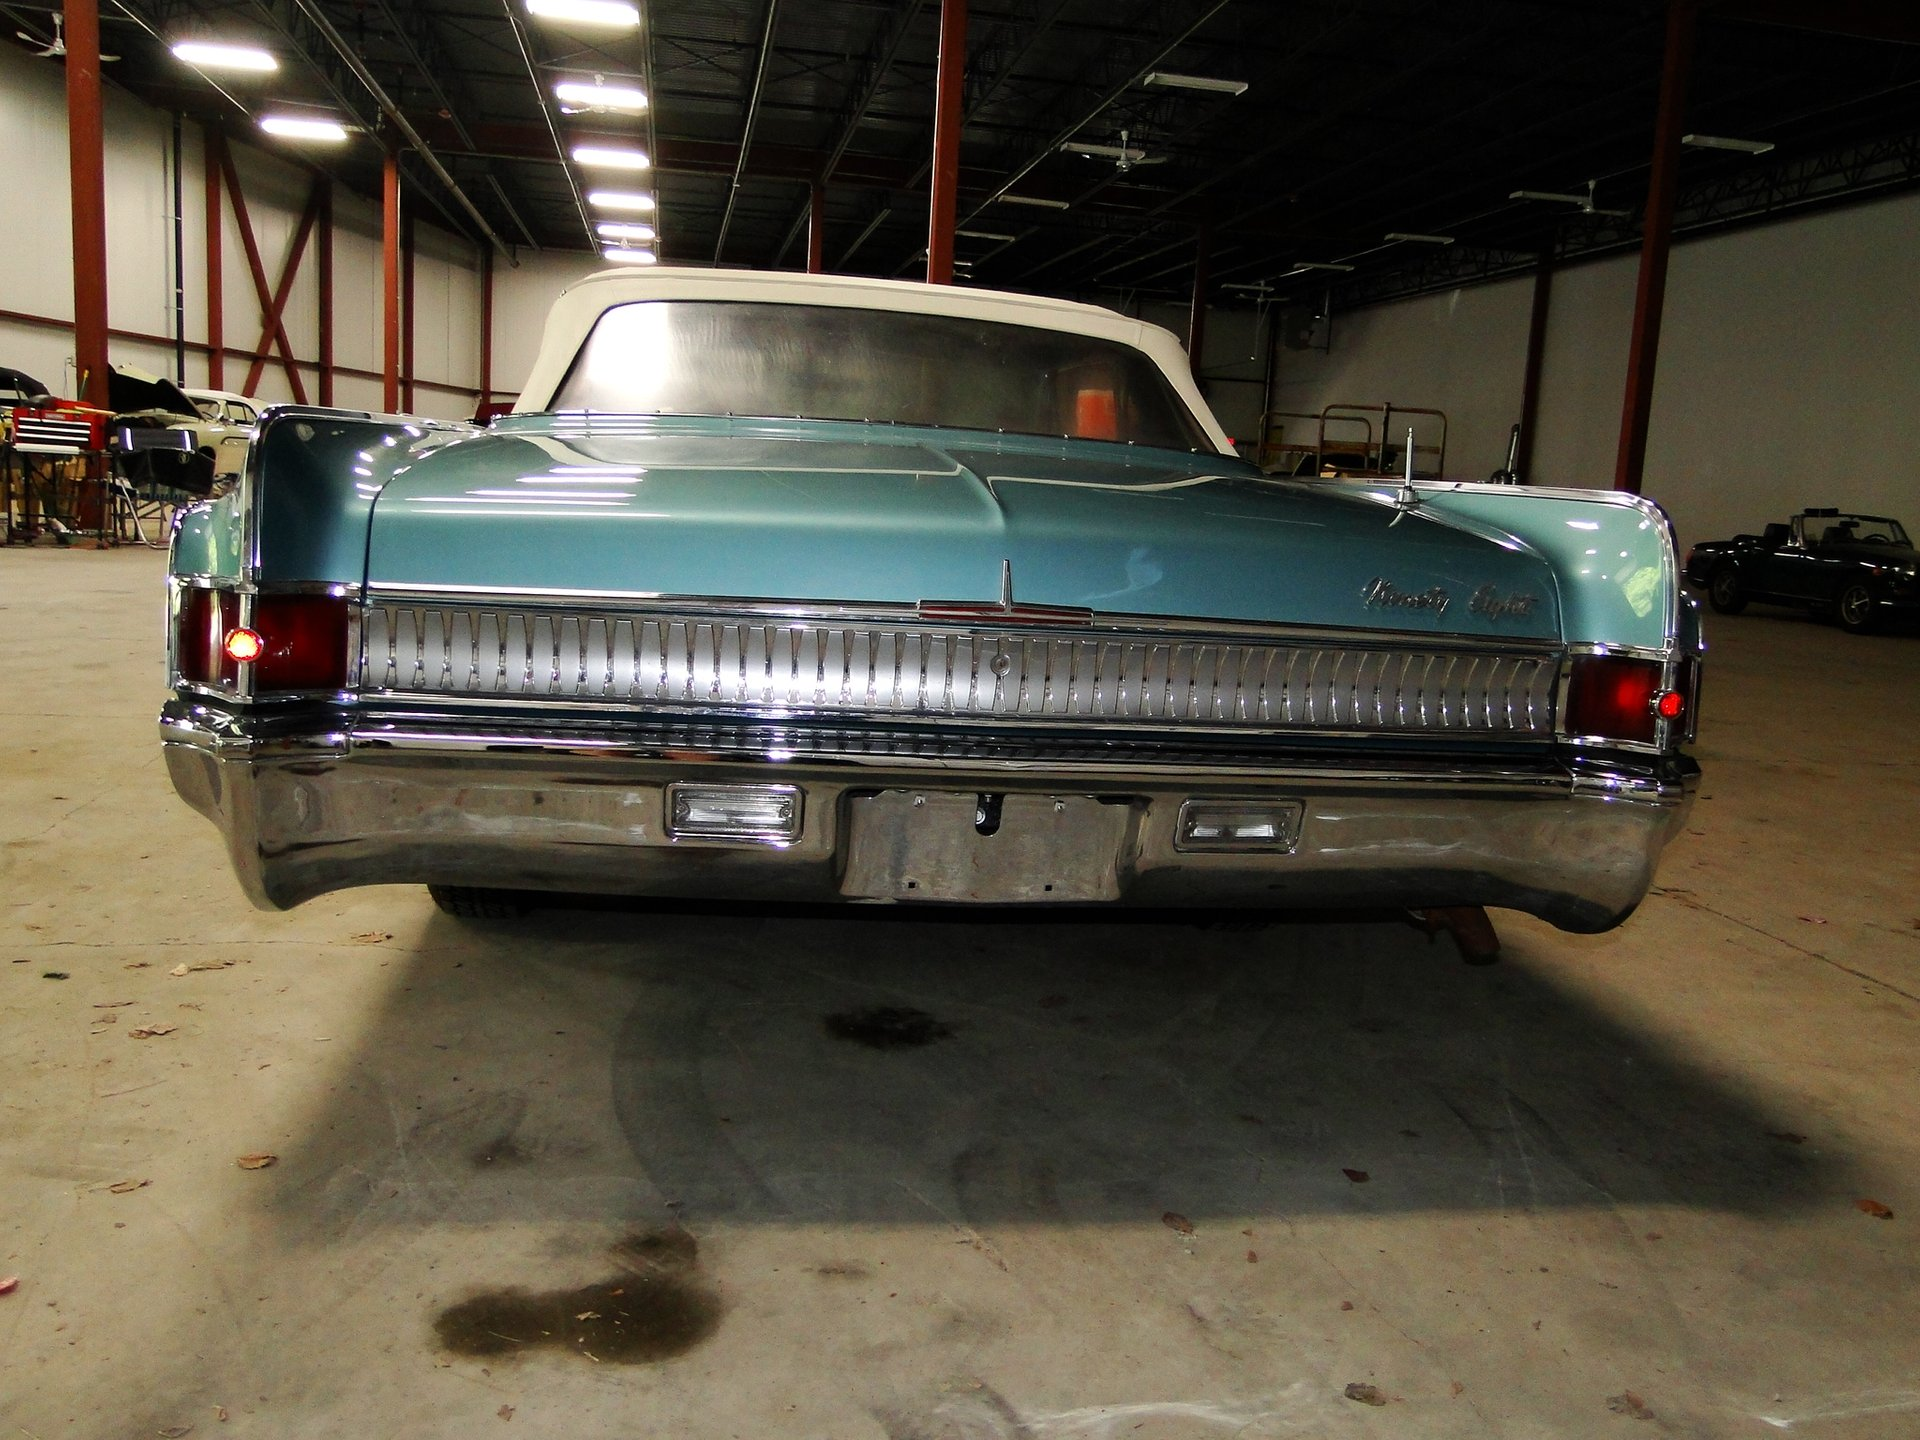 1964 Oldsmobile 98 | Legendary Motors - Classic Cars, Muscle